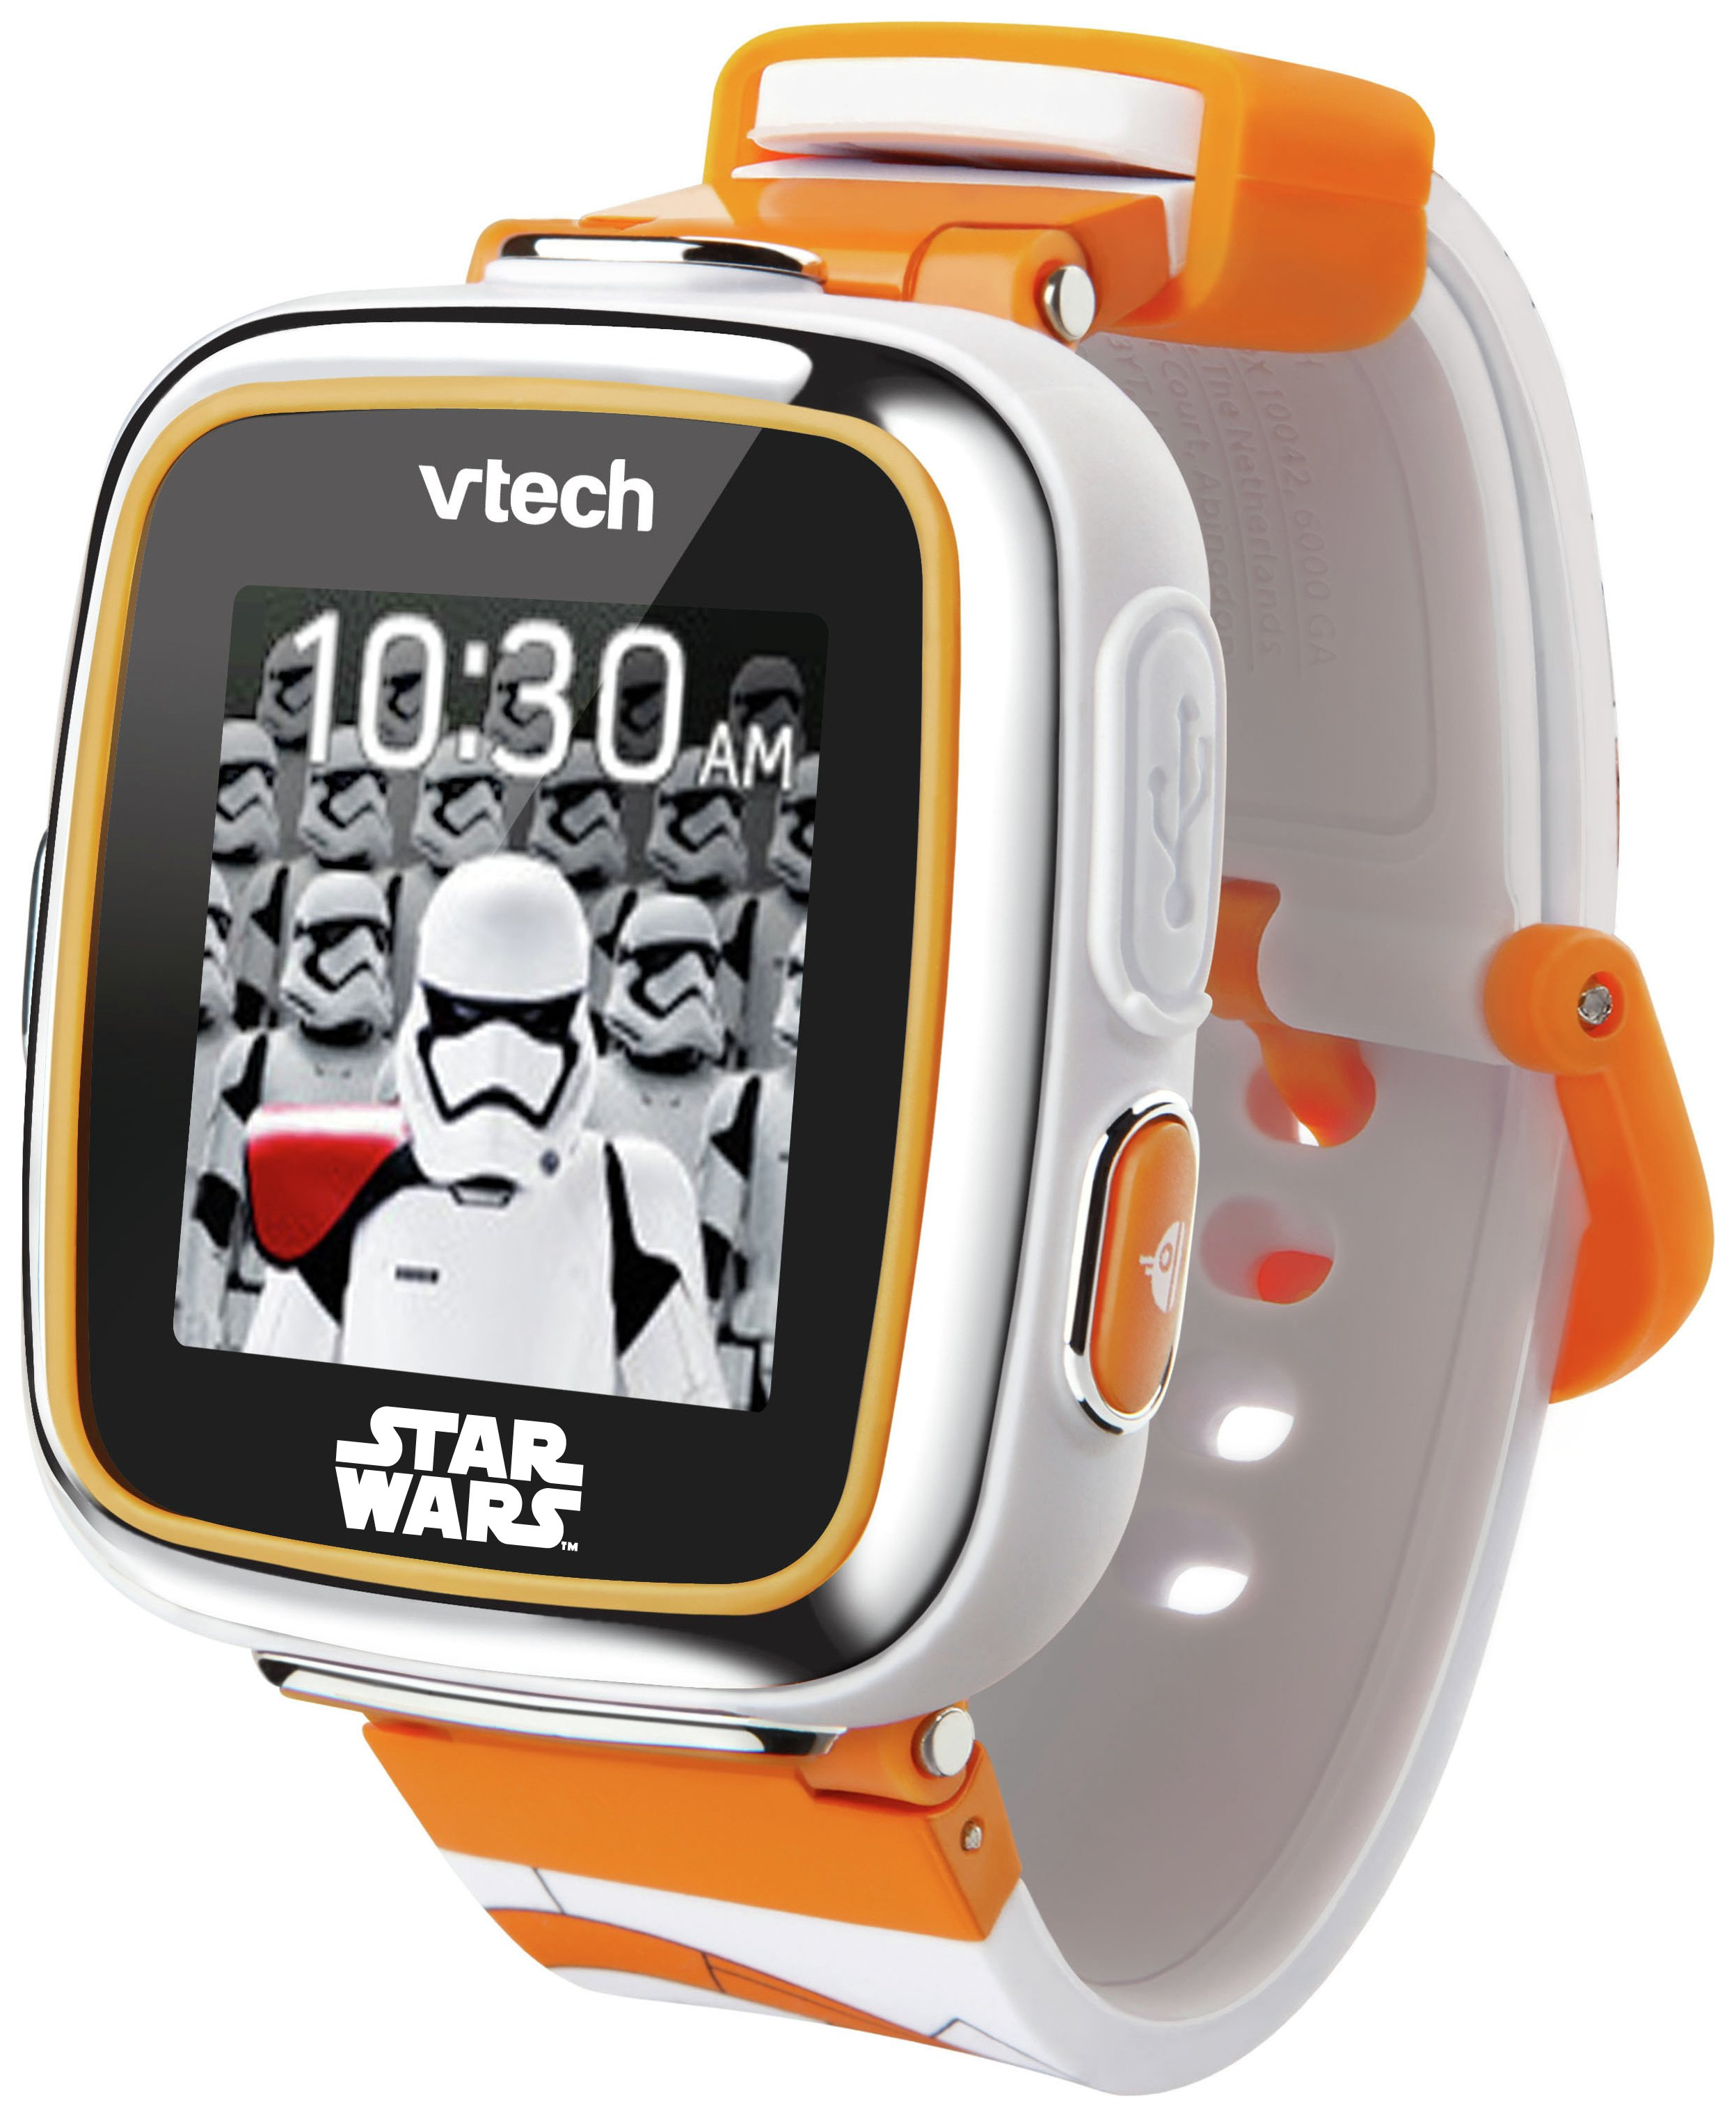 vtech watches